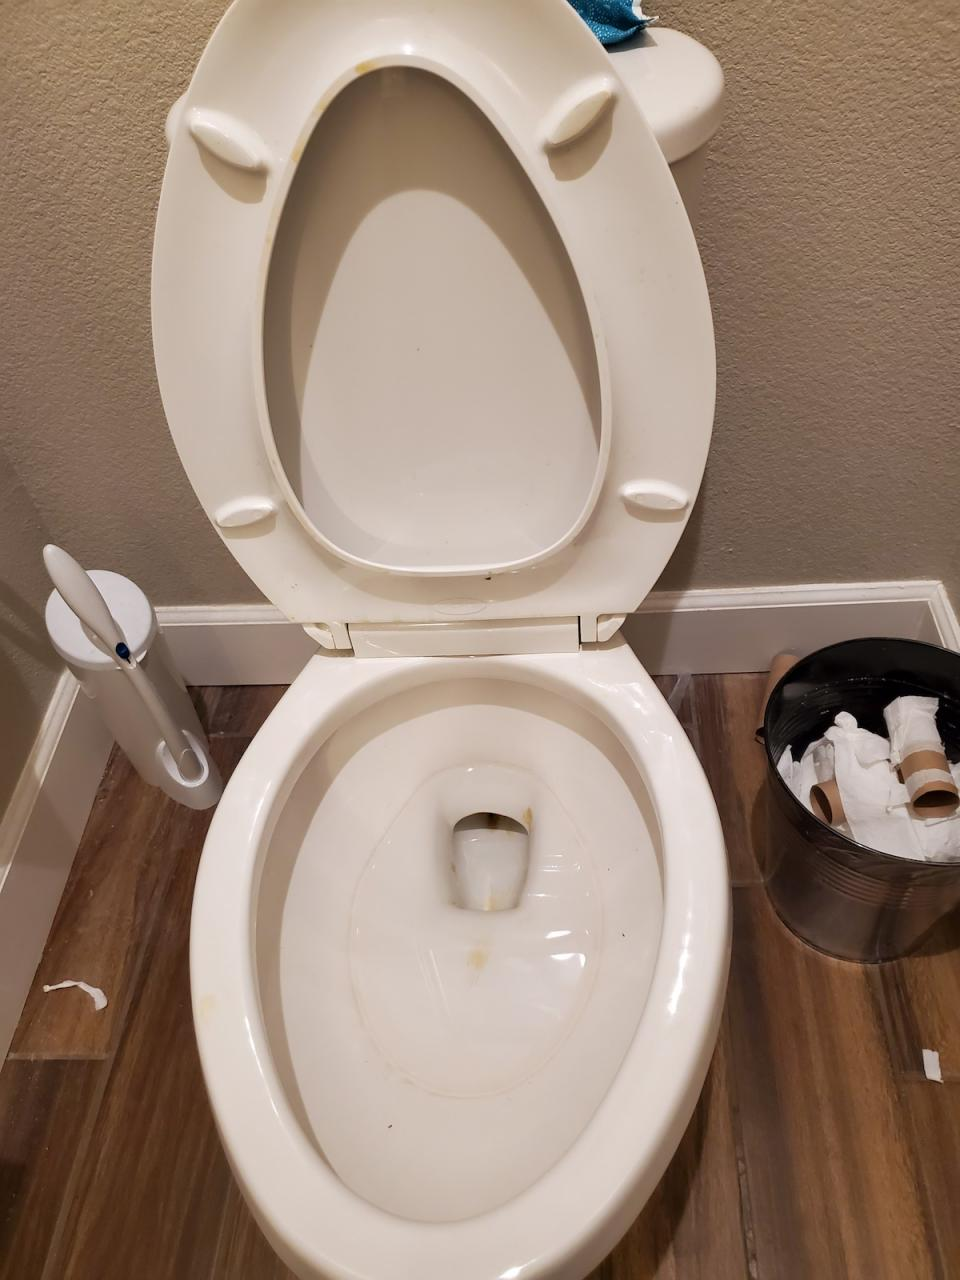 Forgets to Put Toilet Seat Down